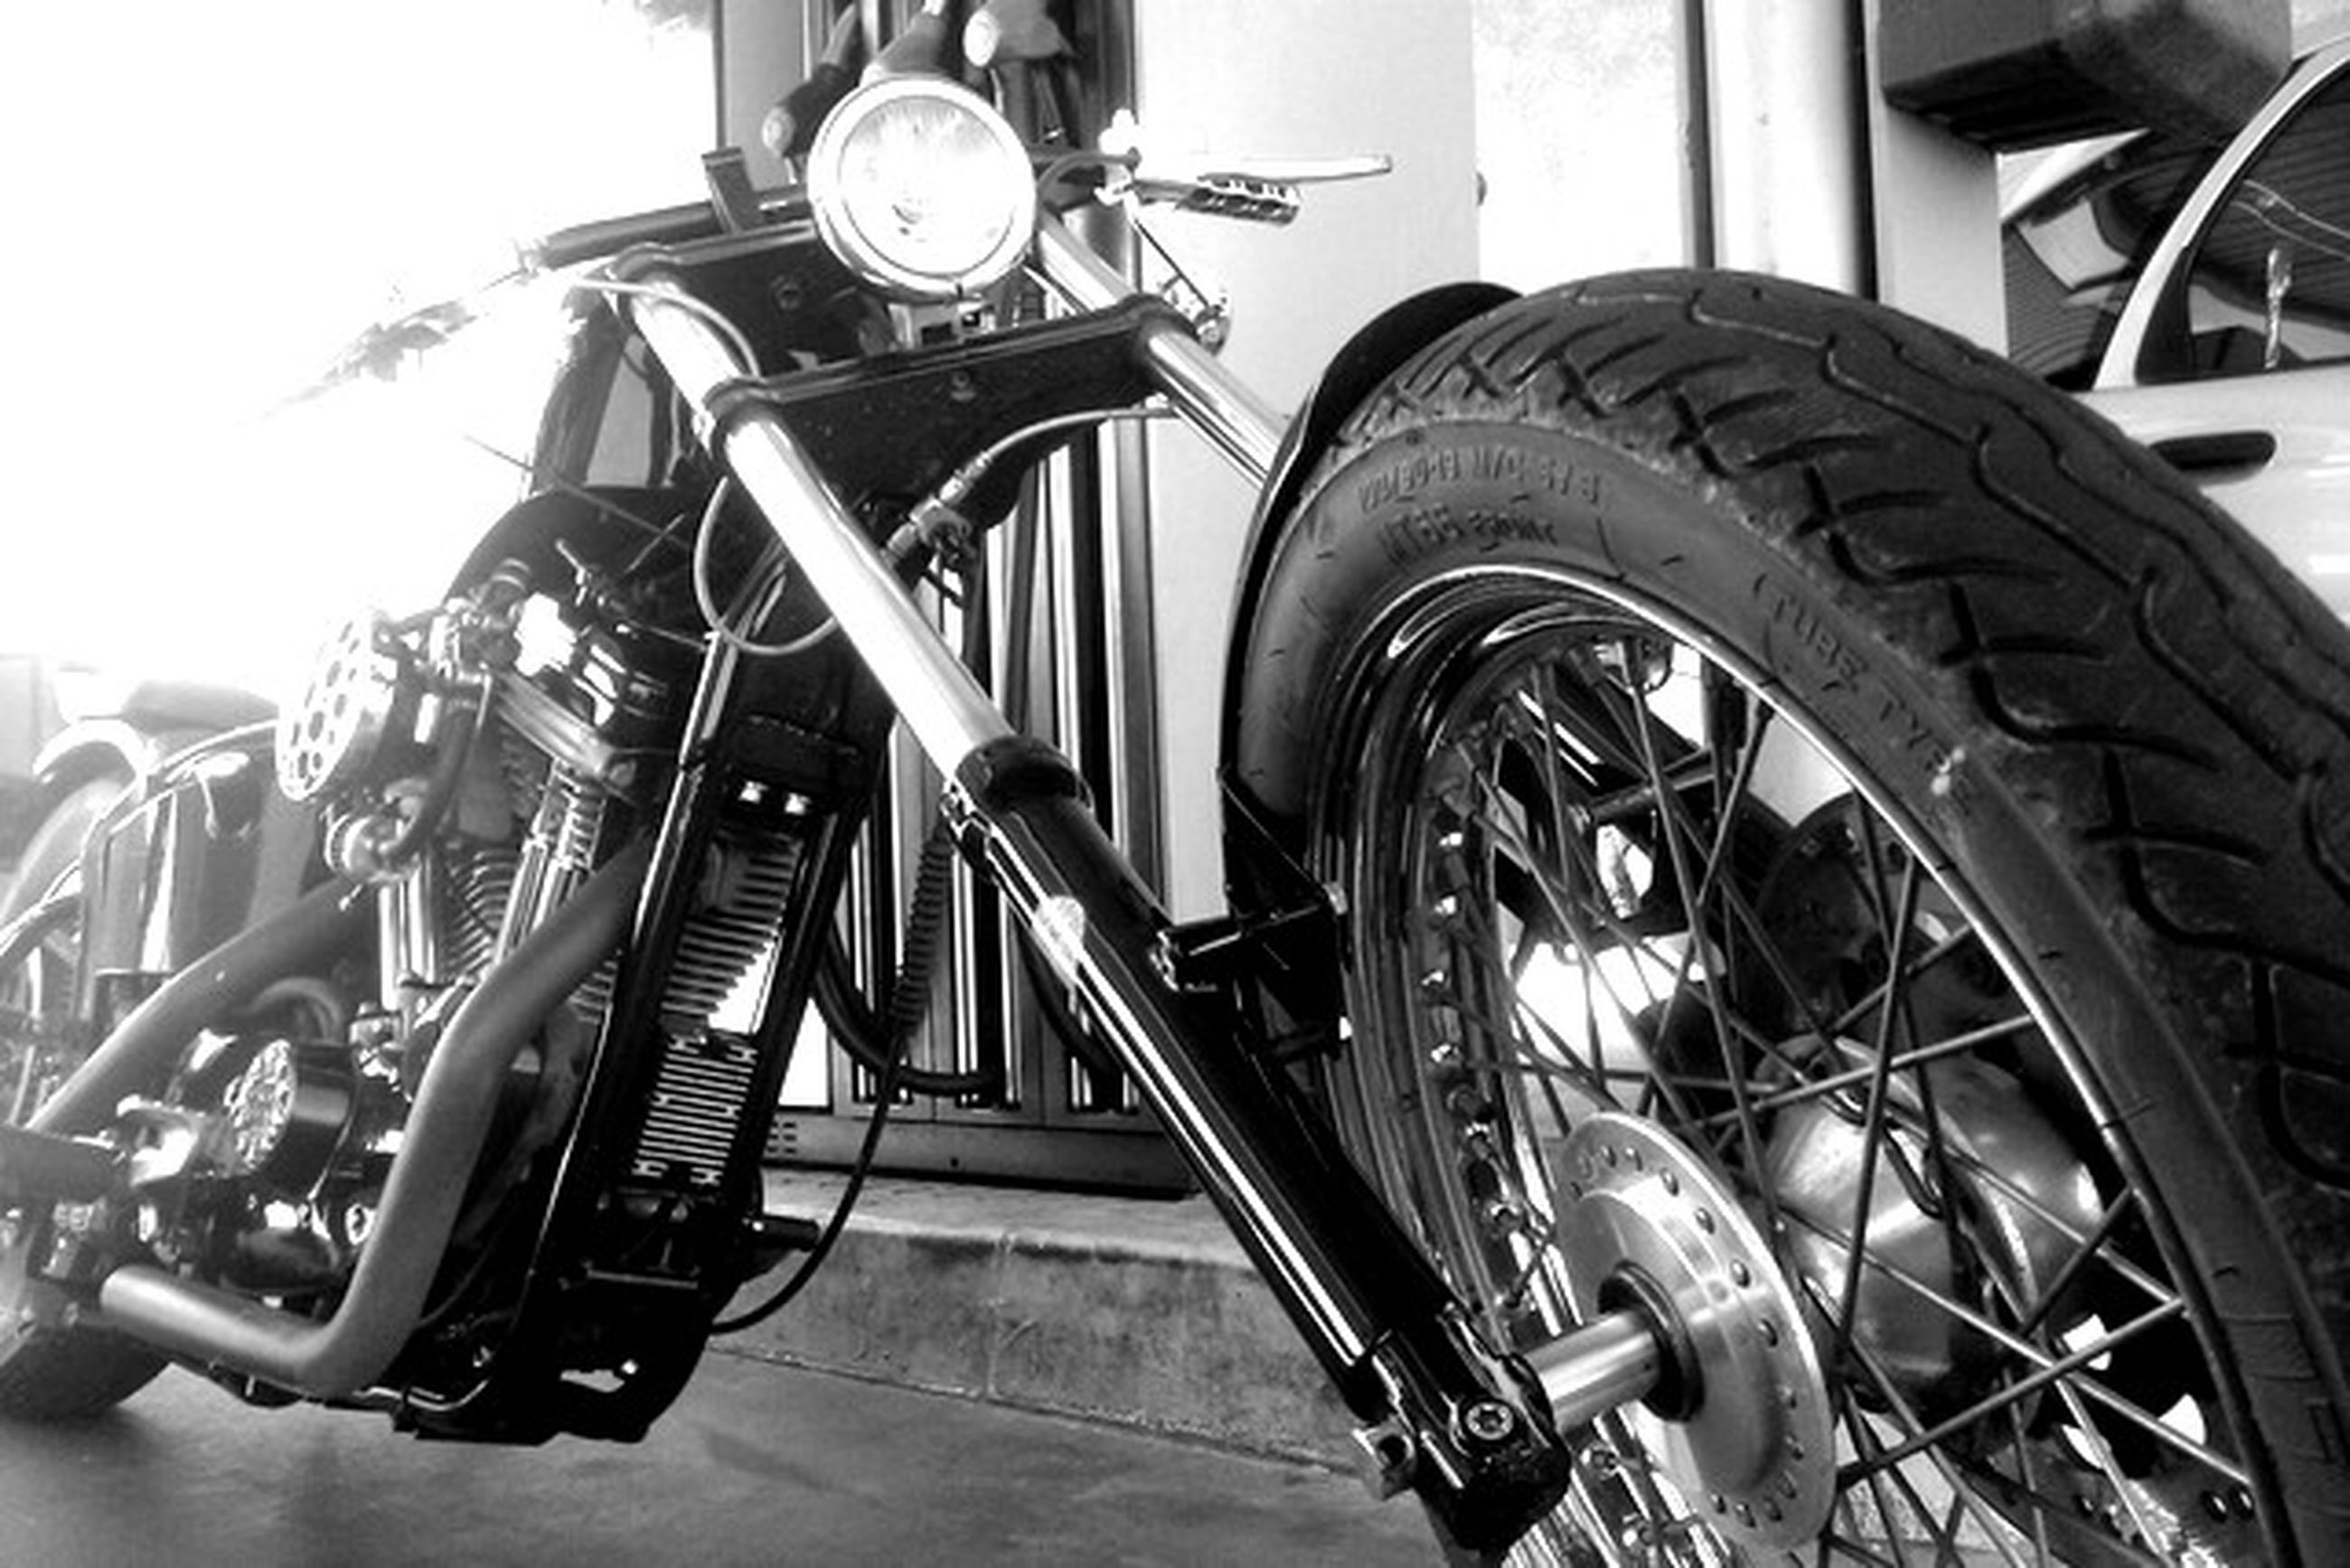 transportation, mode of transport, land vehicle, bicycle, stationary, wheel, metal, built structure, old-fashioned, architecture, machinery, day, travel, parked, motorcycle, no people, low angle view, retro styled, machine part, parking